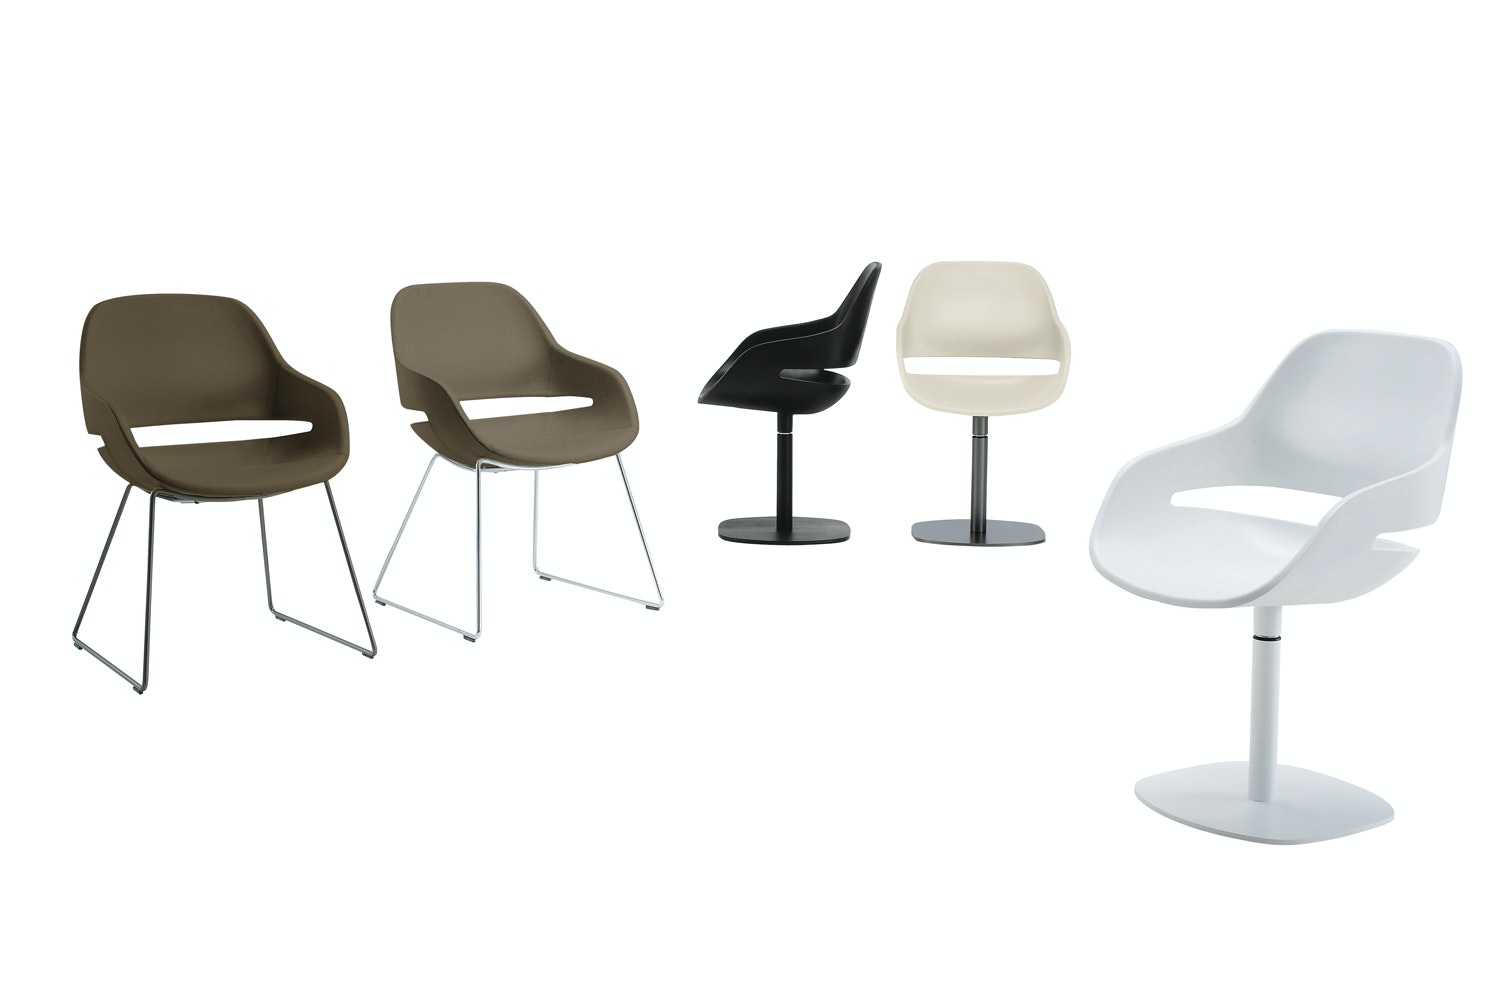 Eva 2268 Chair with Arms by Ora Ito for Zanotta